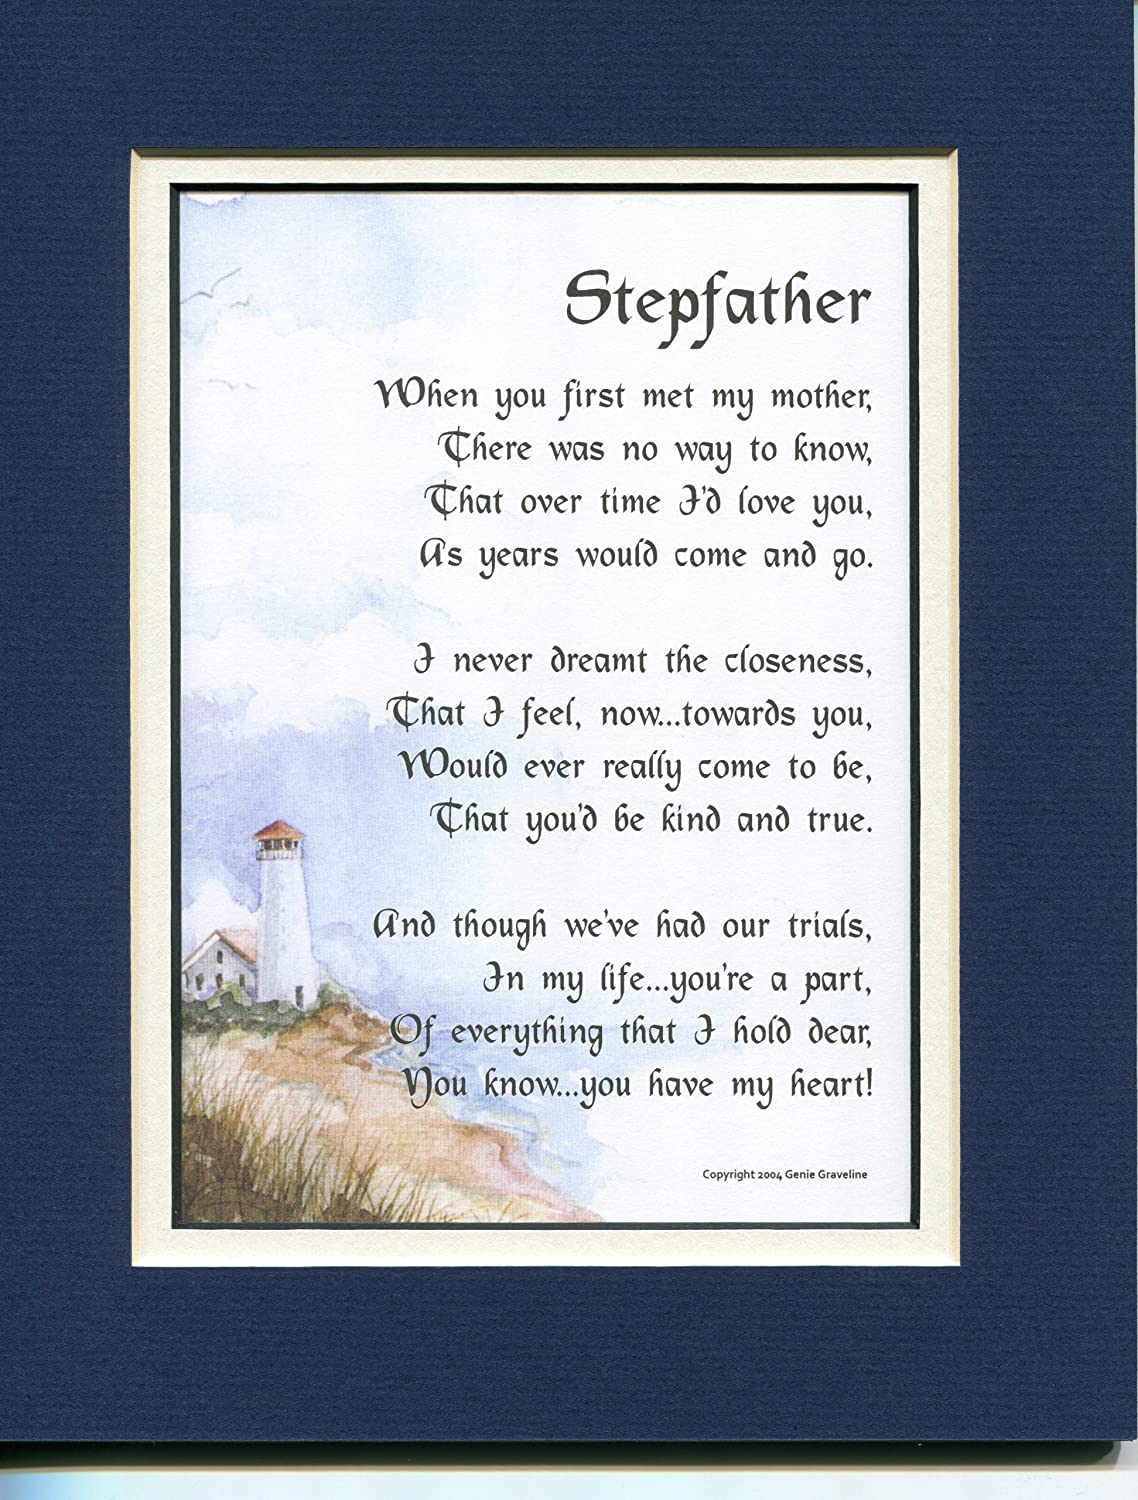 Amazon gift present poem for a stepfather 26 stepfathers amazon gift present poem for a stepfather 26 stepfathers 50th 60th 70th 80th birthday step dad poems posters prints xflitez Choice Image